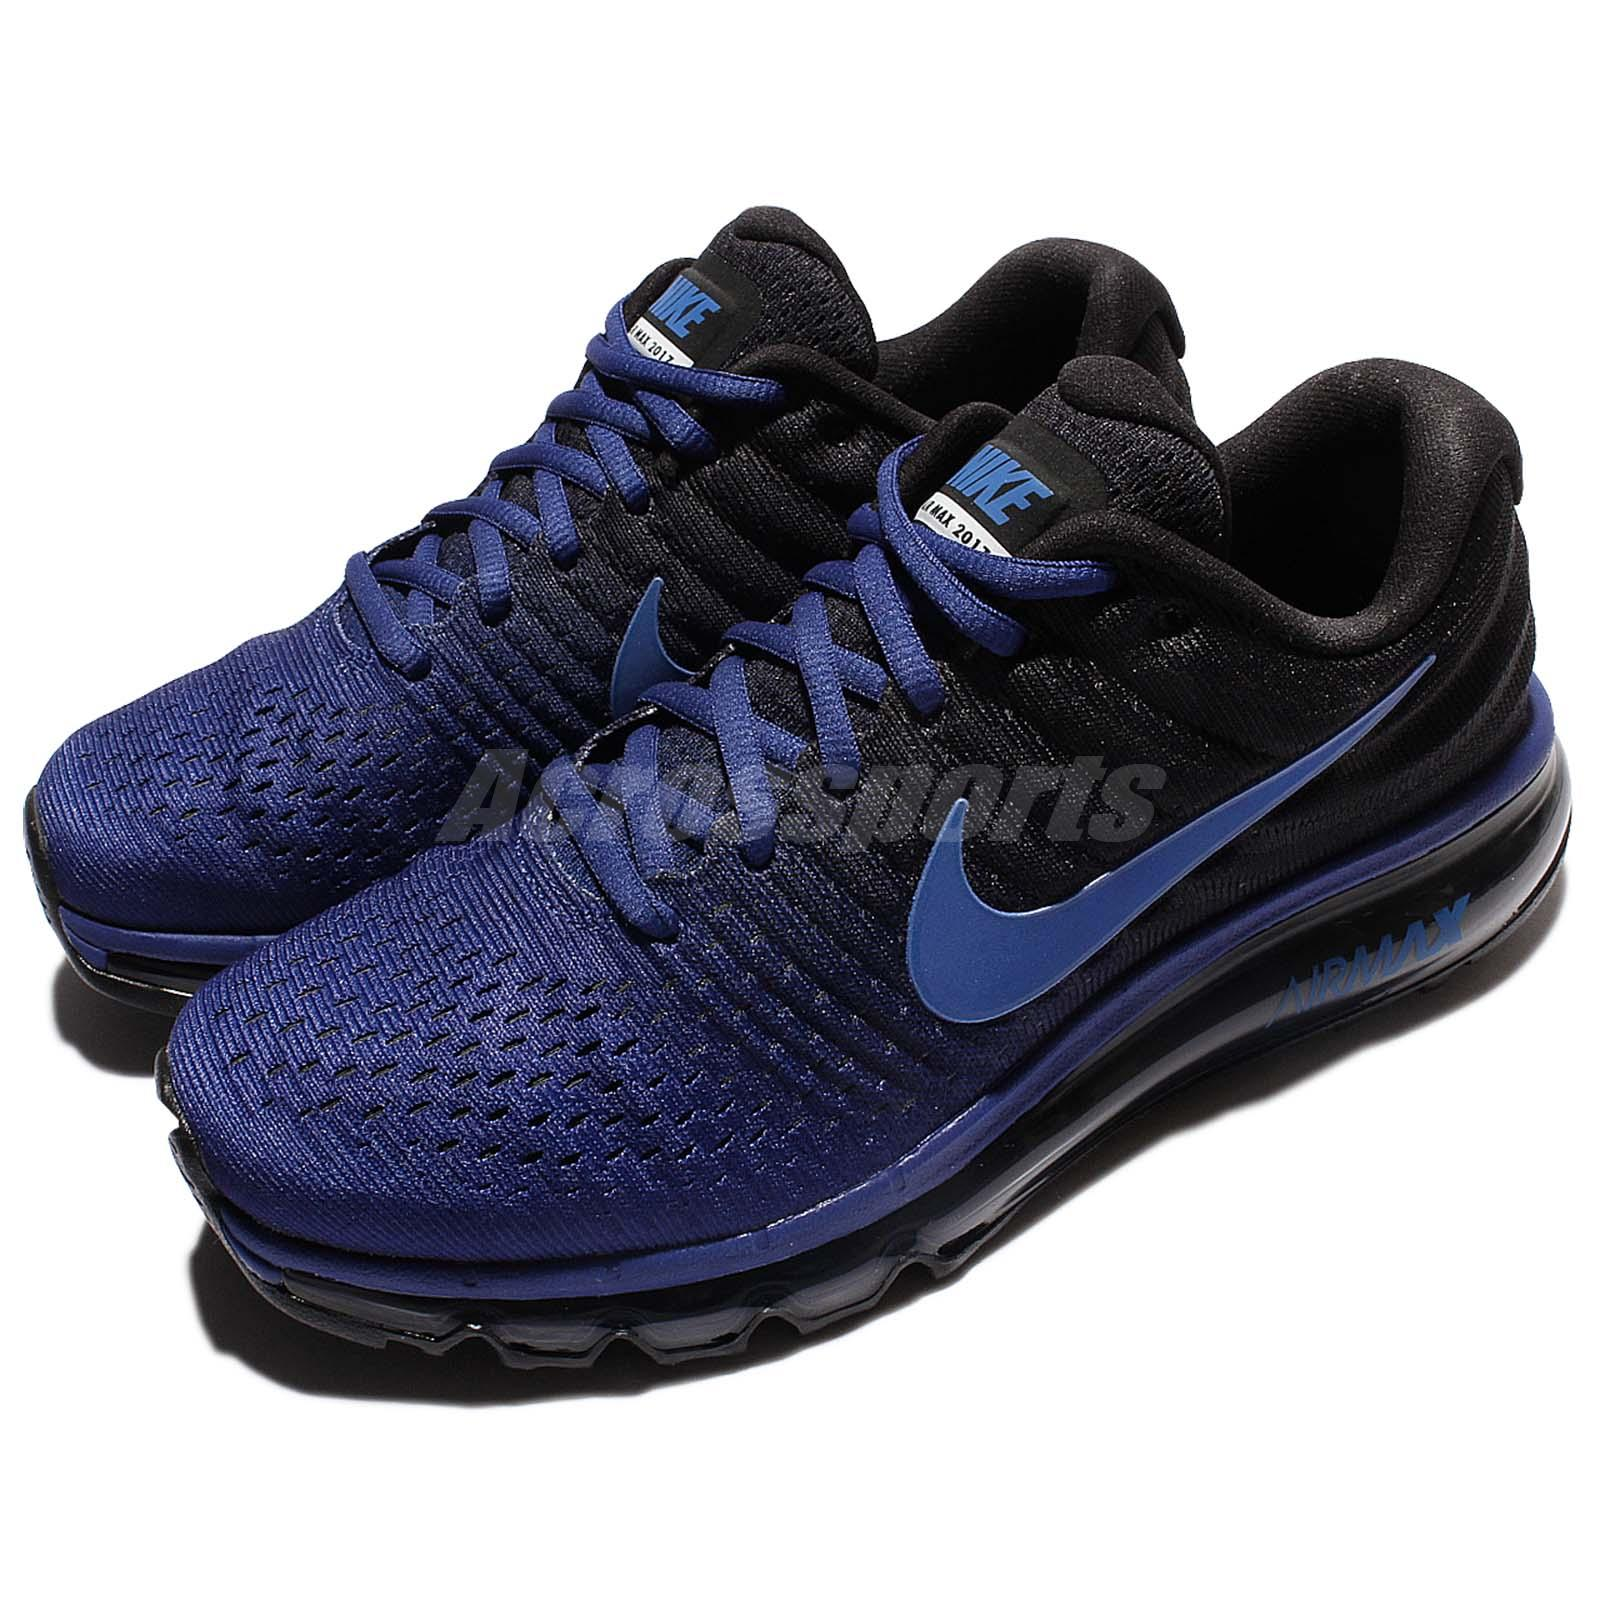 Details about Nike Air Max 2017 Blue Black Men Running Shoes Sneakers  Trainers 360 849559-401